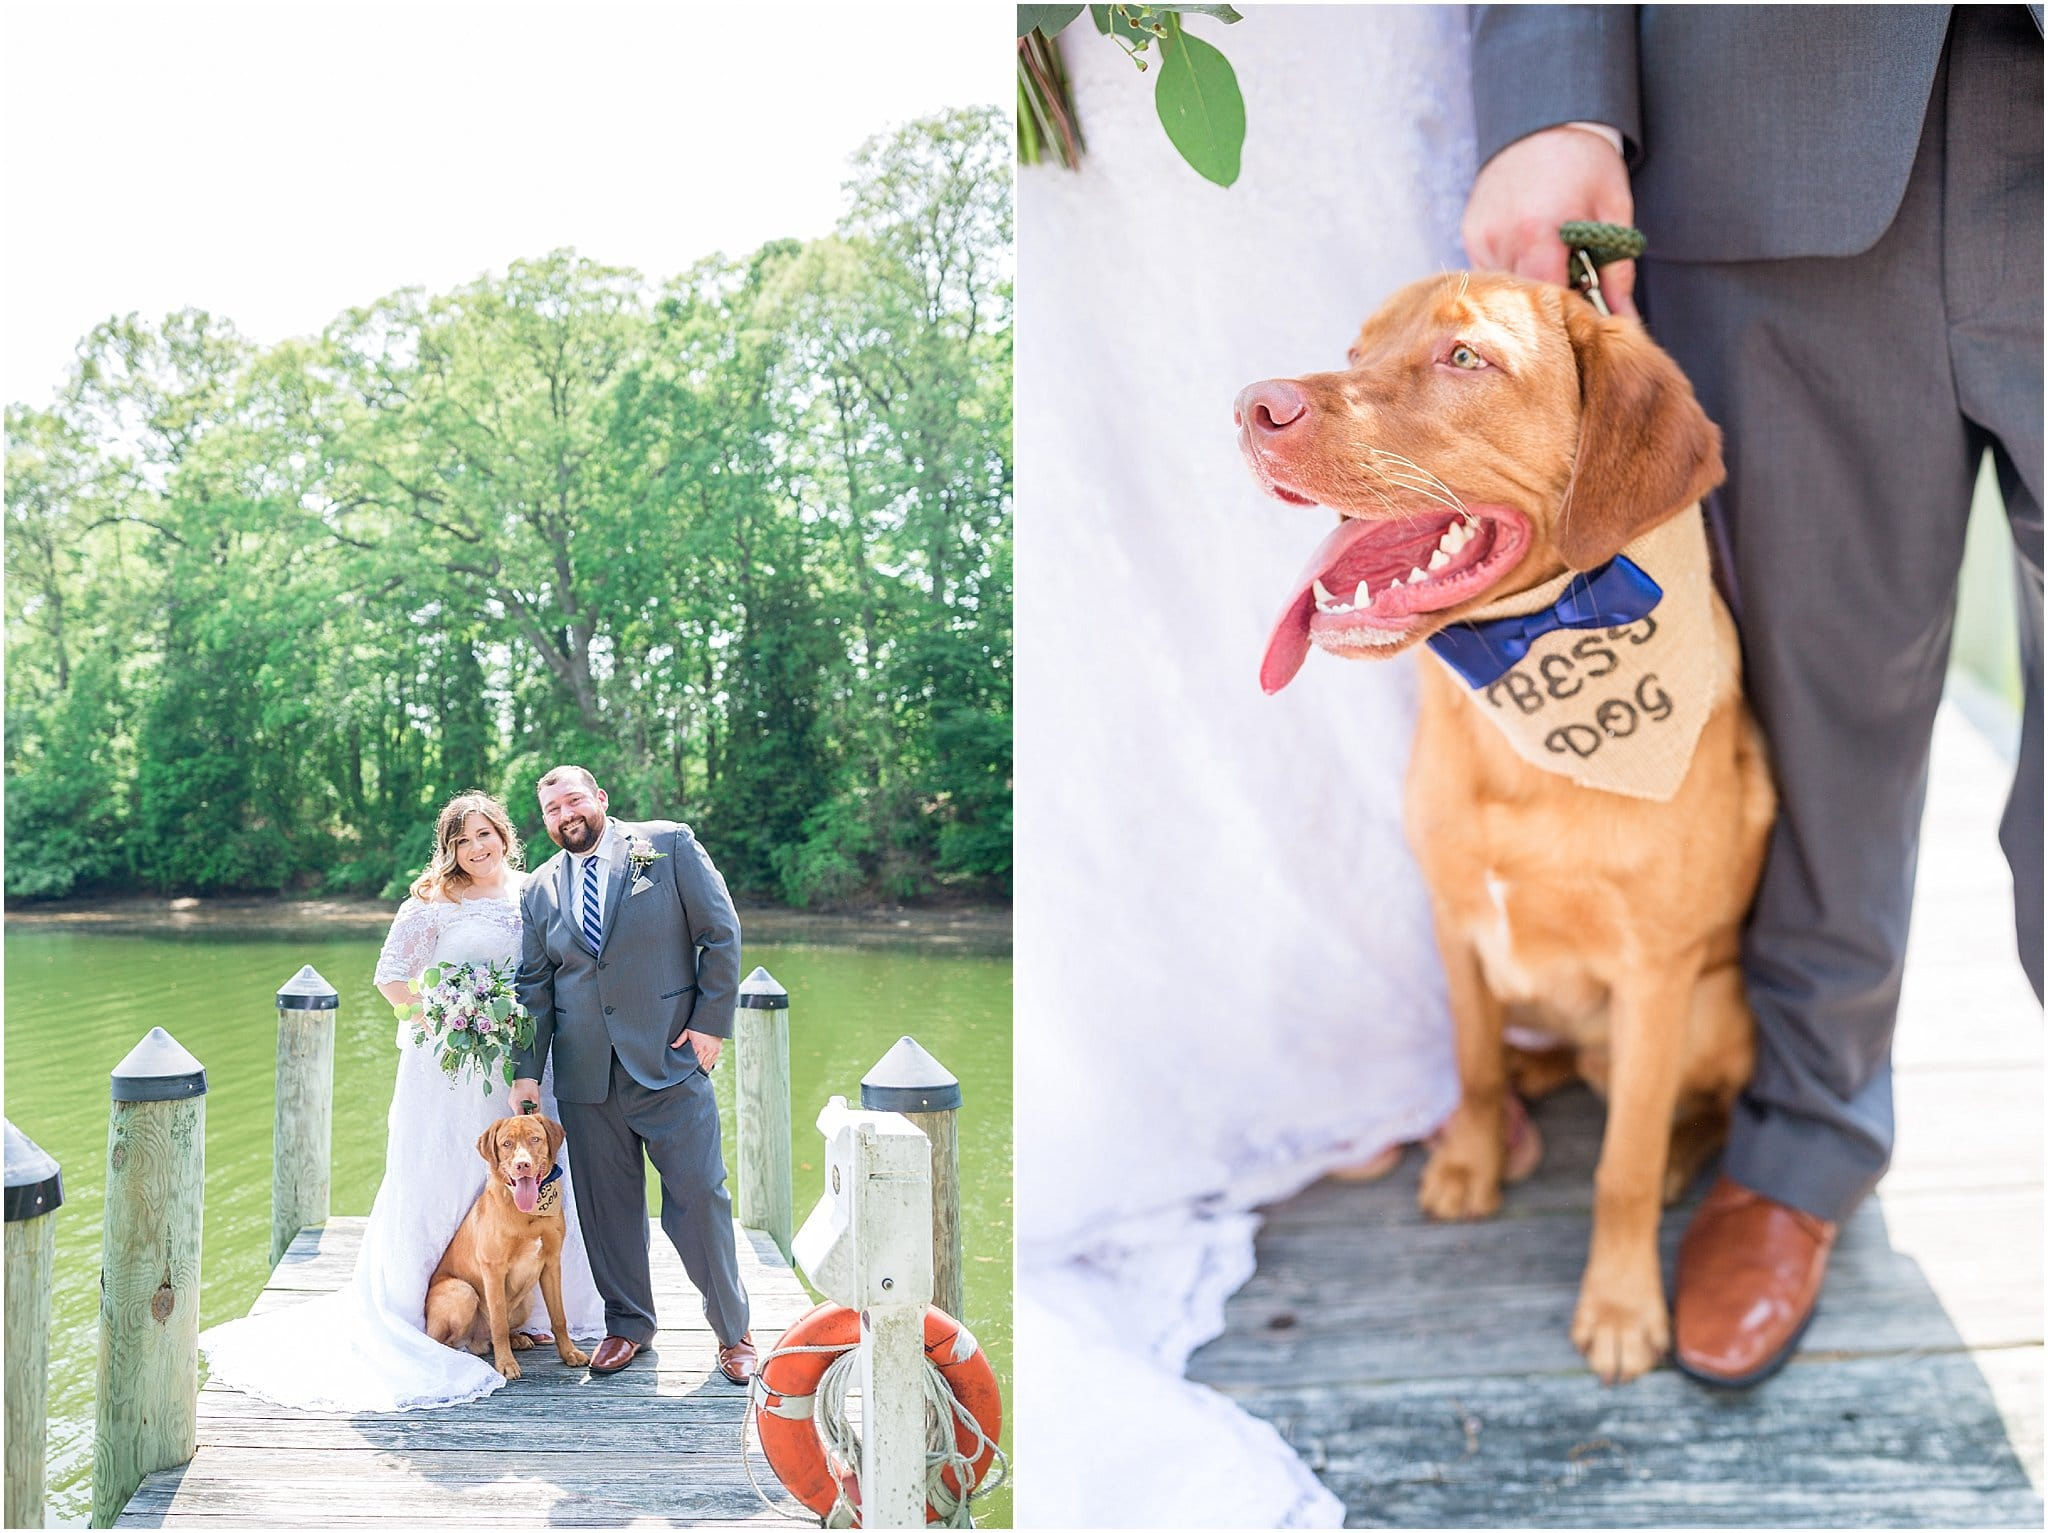 cole-wye-island-wedding-cassidymrphotography_0054